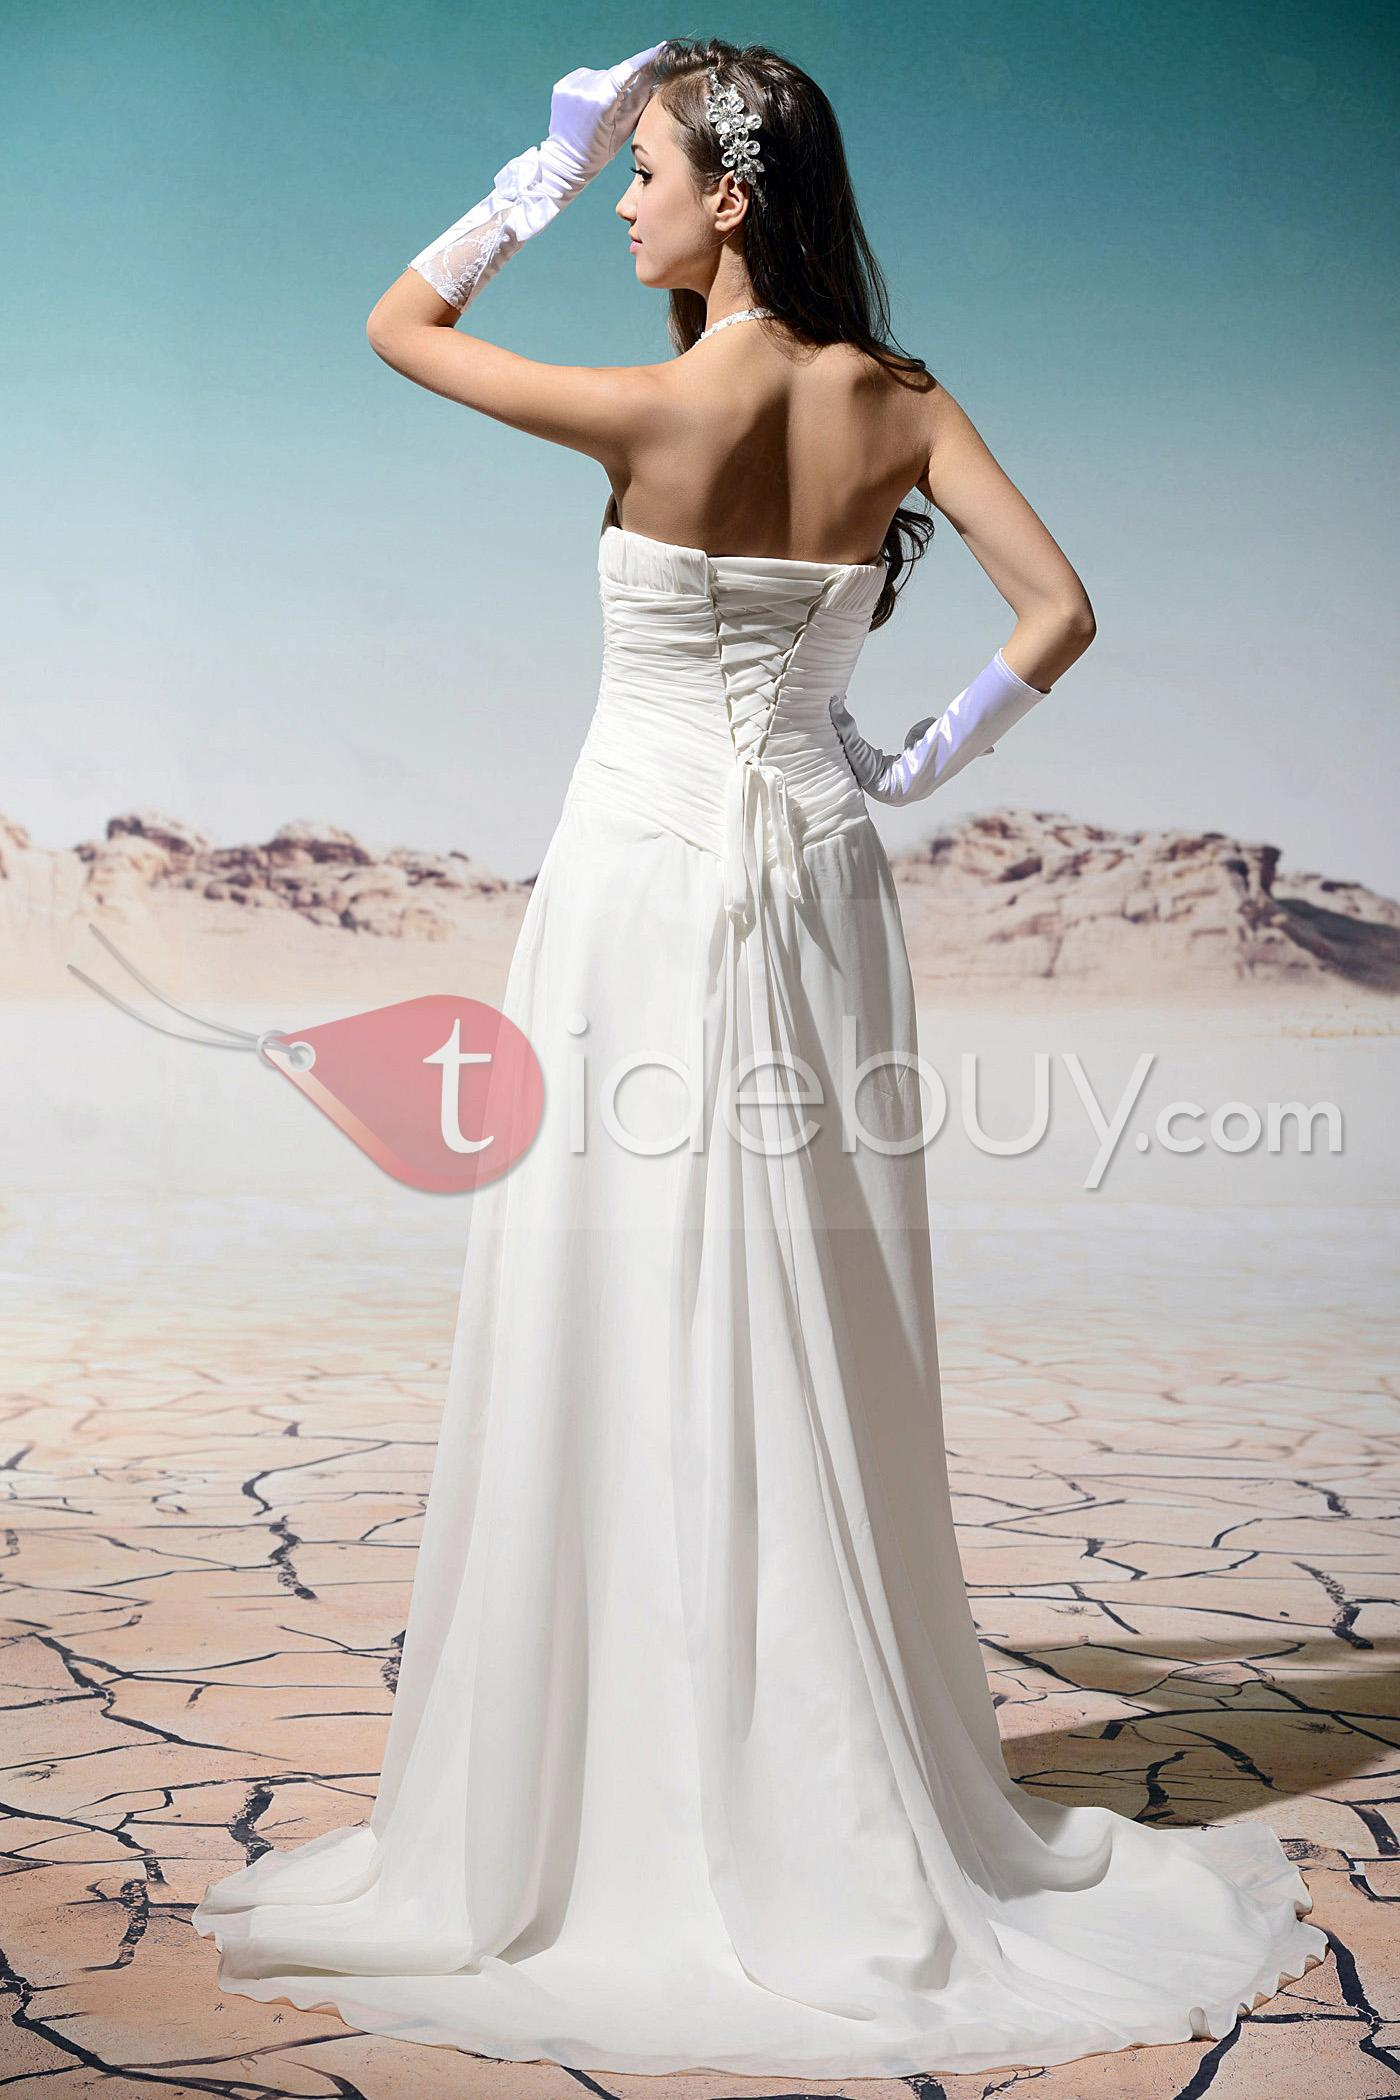 Wedding dresses company released its wedding for Tidy buy wedding dresses